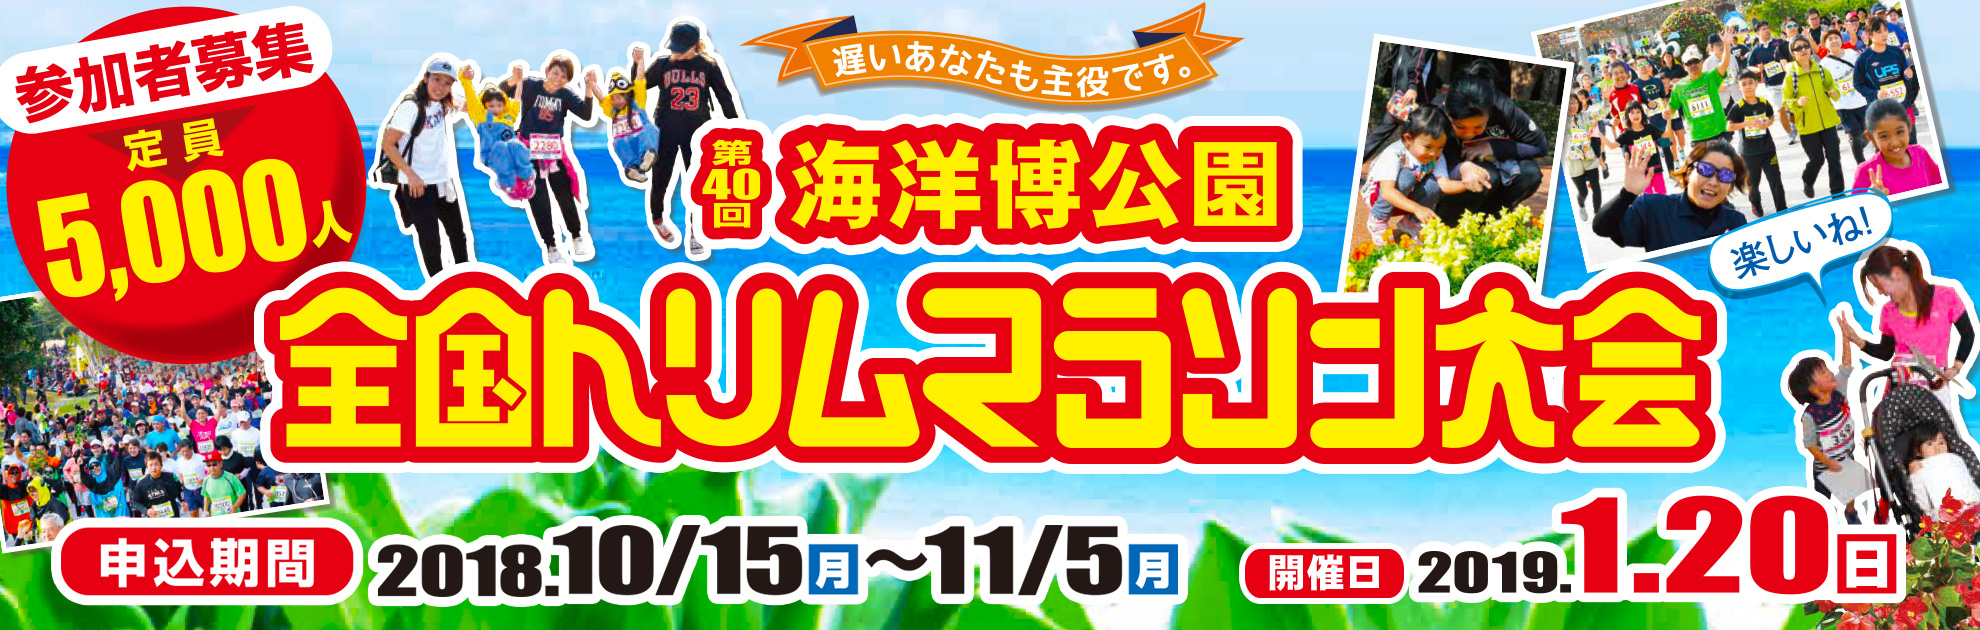 Decision held on the 40th Ocean Expo Park whole country trim marathon event H31 Sunday, January 20! Recruitment of participant University!